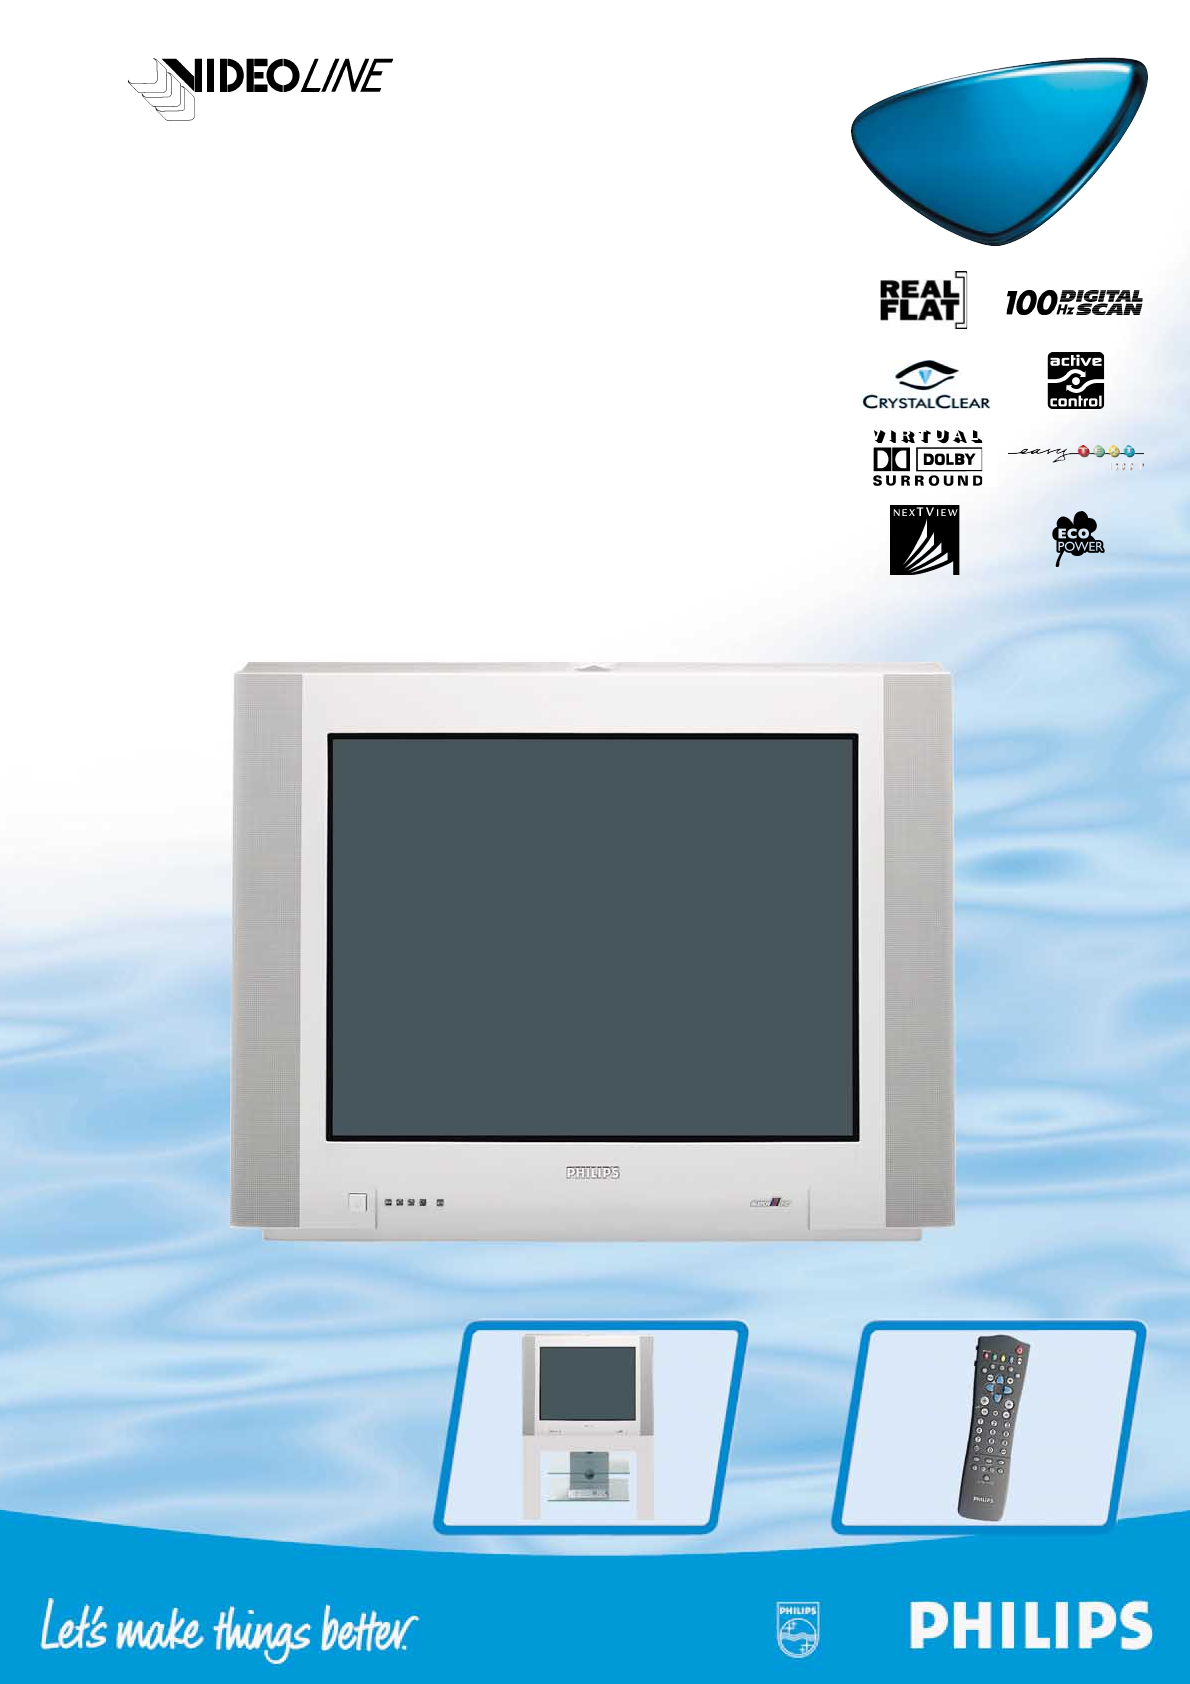 philips crt television 29pt 9007 user guide manualsonline com rh tv manualsonline com Philips DVD Player Manual Philips User Guides